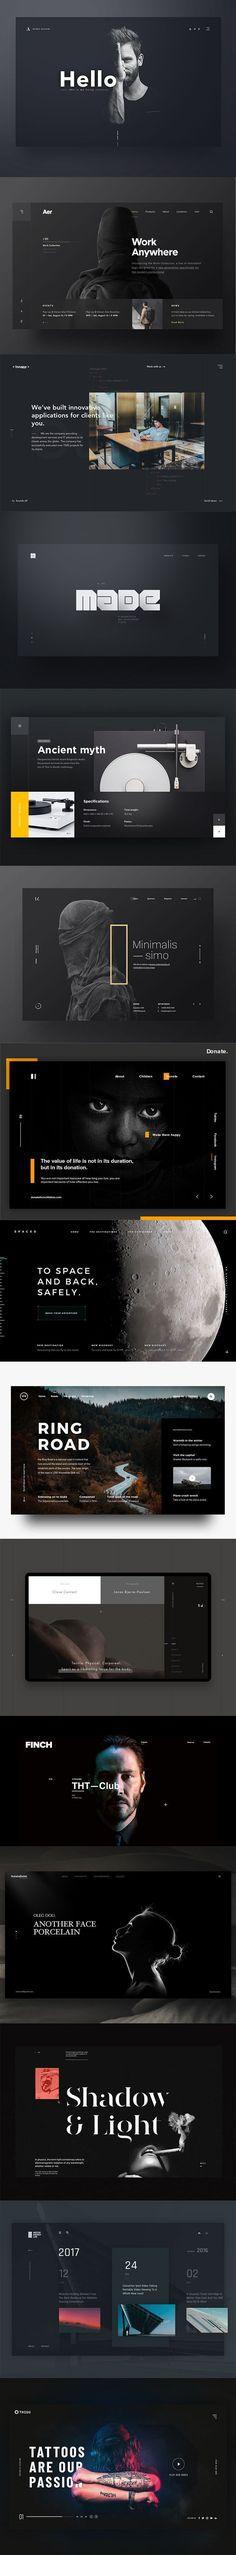 So if you are looking for inspiration for design solutions which using dark background as a basis of color scheme, here are 50 Excellent Dark Background Web UI Designs to inspire you. Web And App Design, Web Design Trends, Flat Design, Café Design, Icon Design, Homepage Design, Web Design Tips, Layout Design, Responsive Web Design